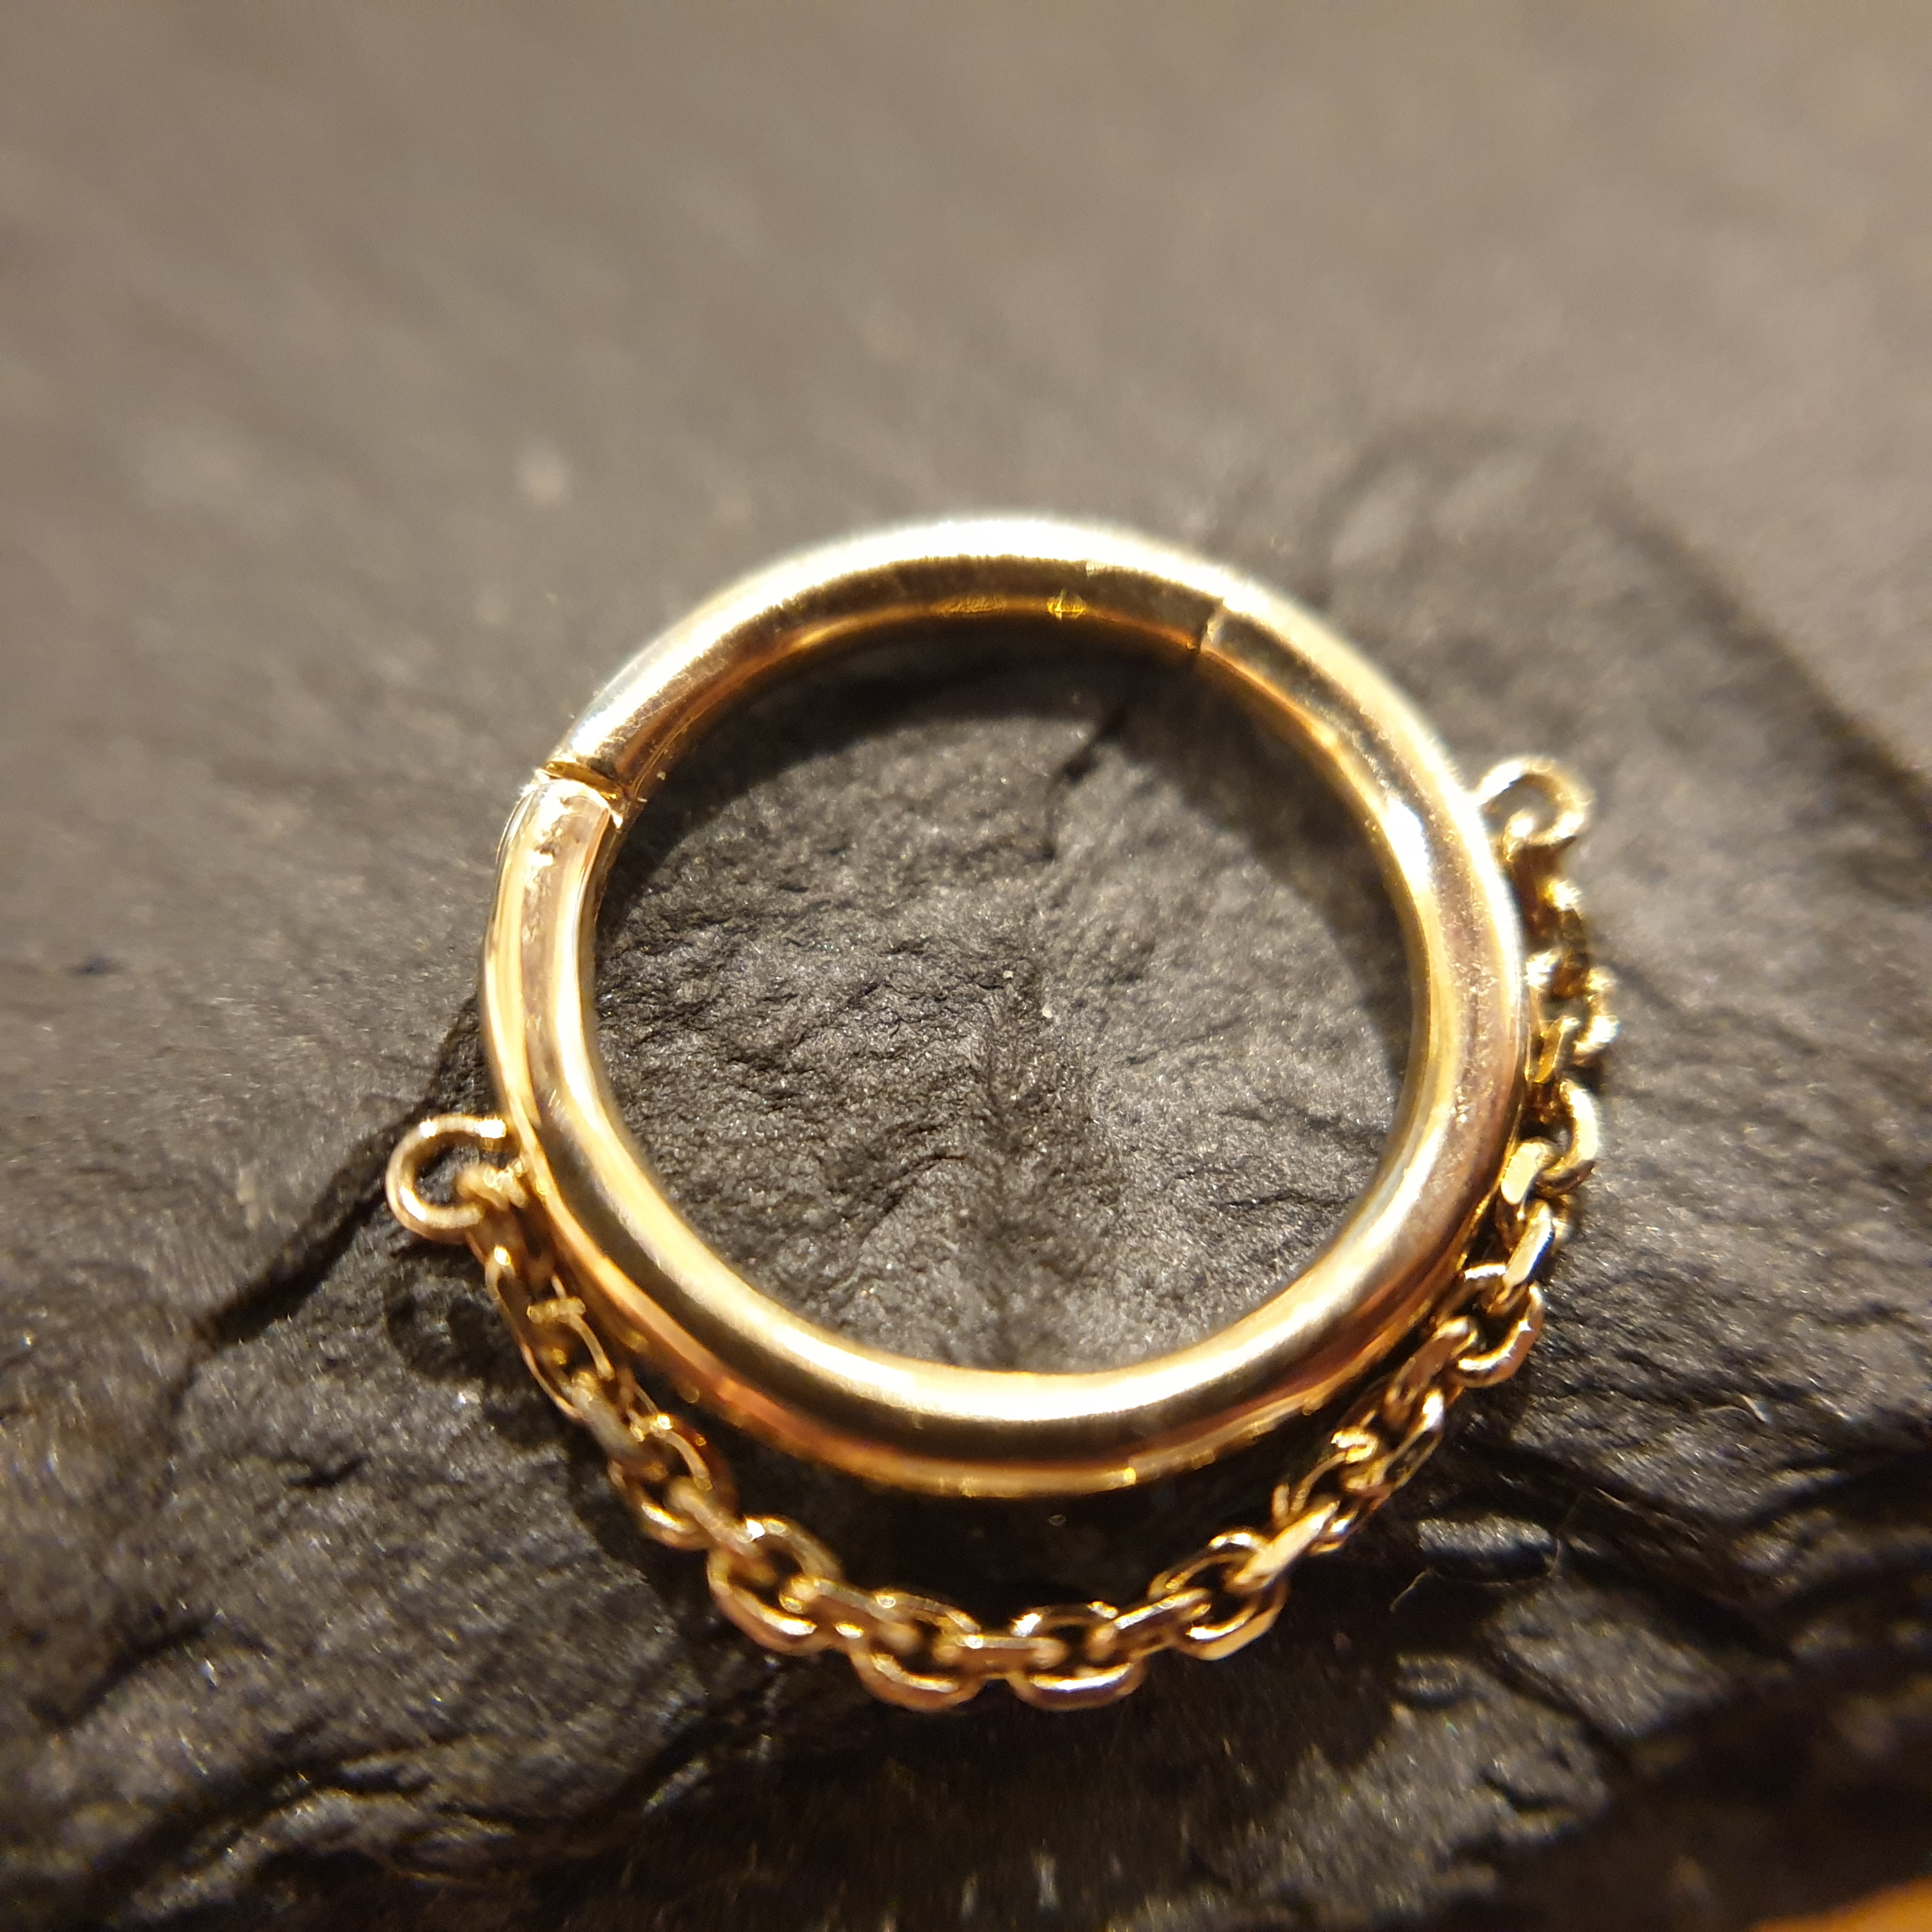 Auris 14k Echtgold Seg. Ring chain YG